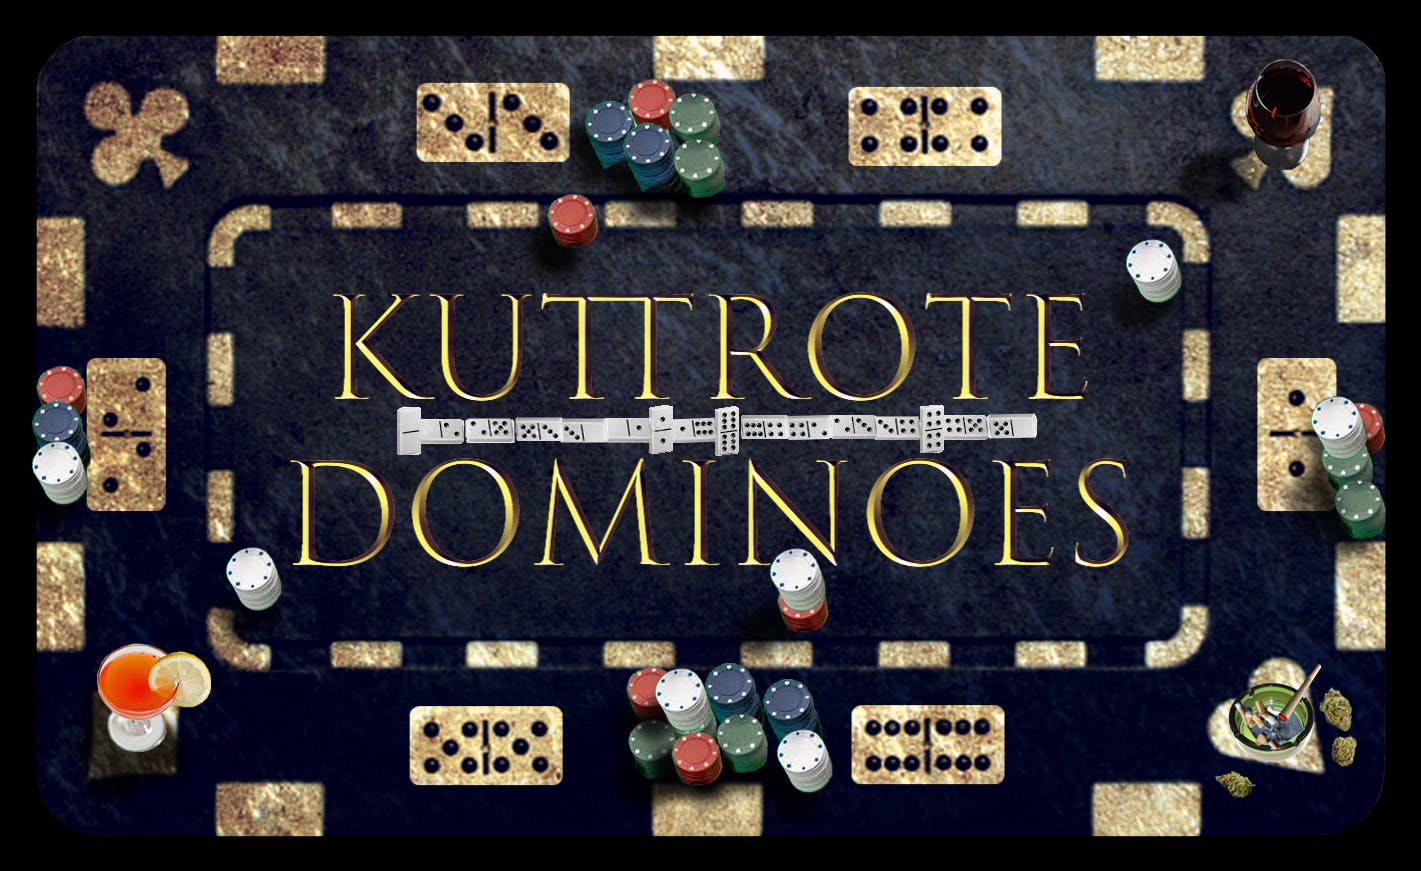 KUTTROTE Casino Style DOMINO Tournament